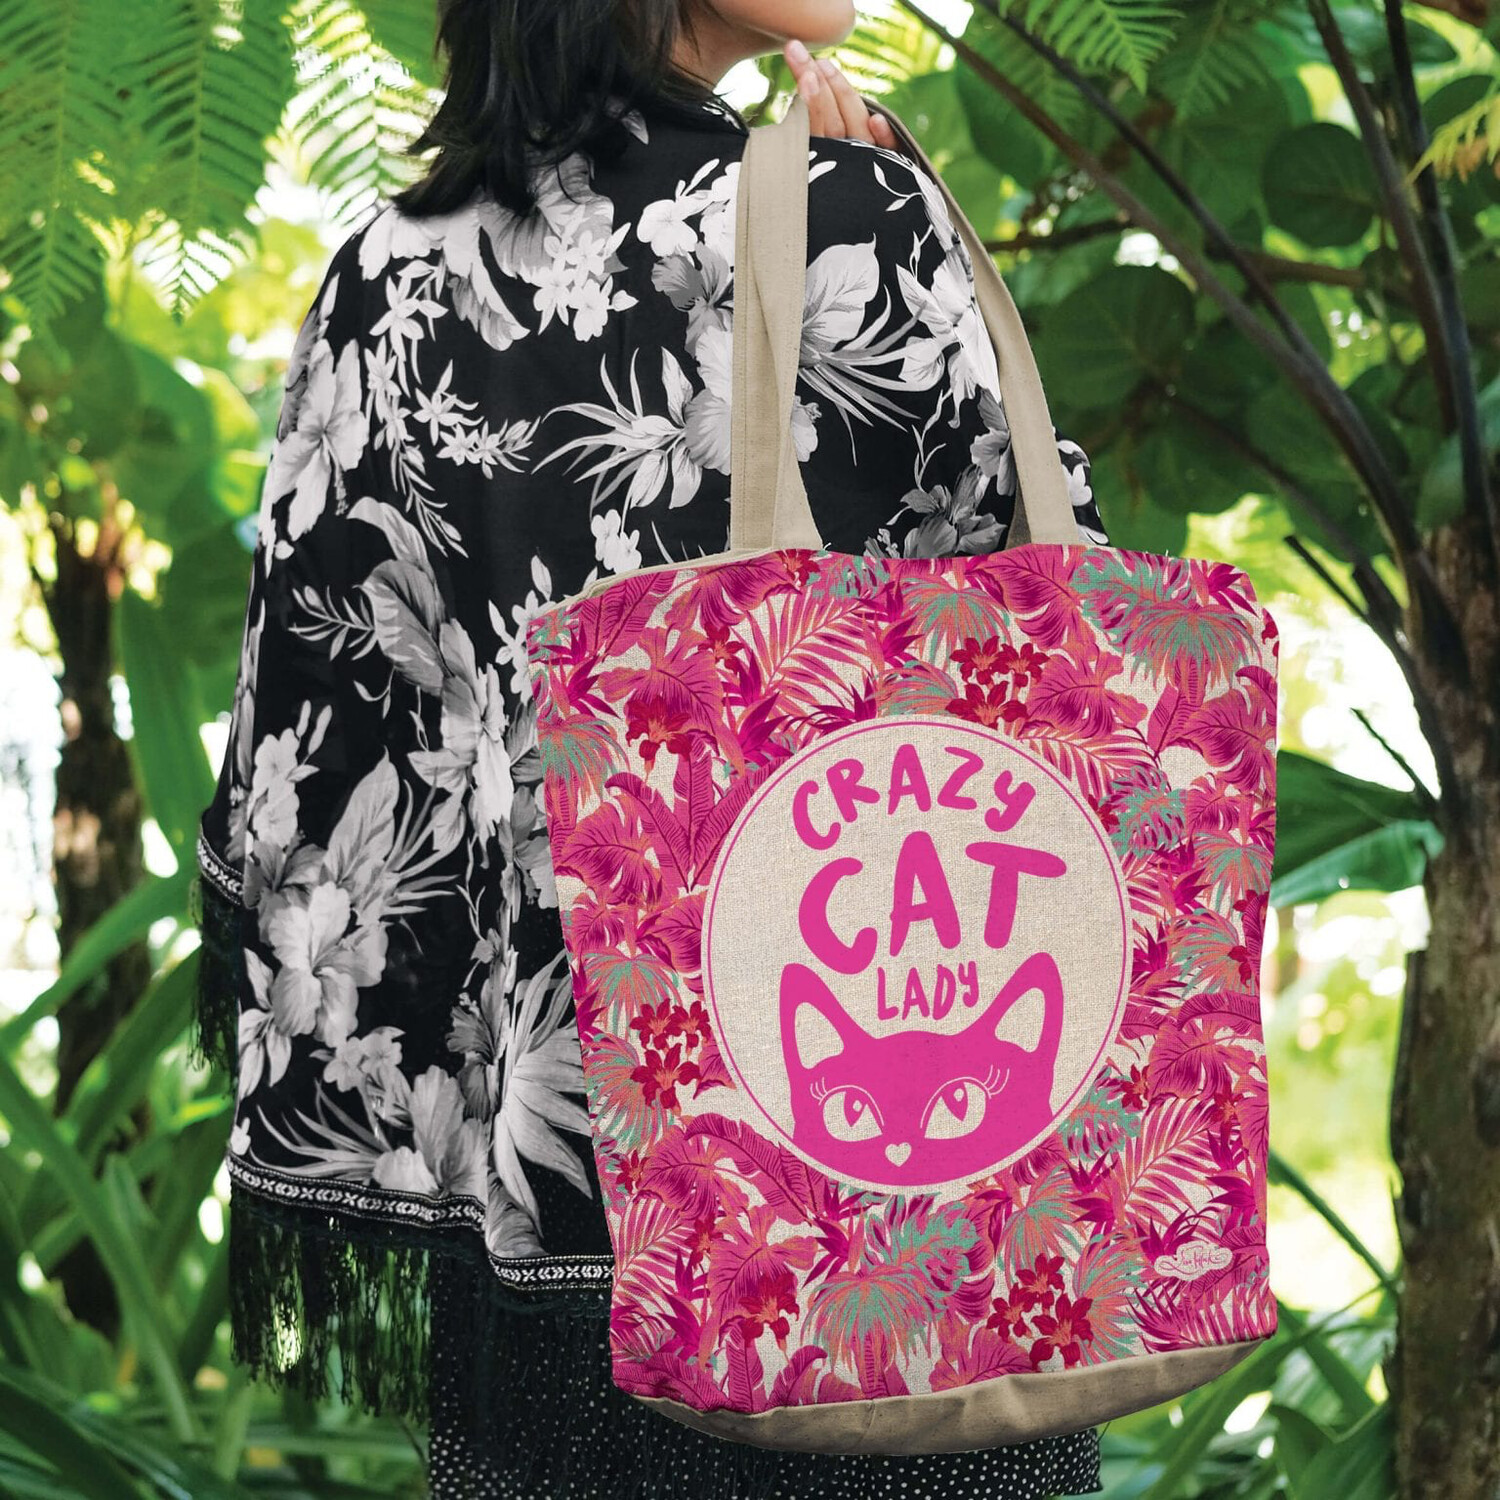 Lisa Pollock Linen/Poly Shopping Tote - Crazy Cat Lady